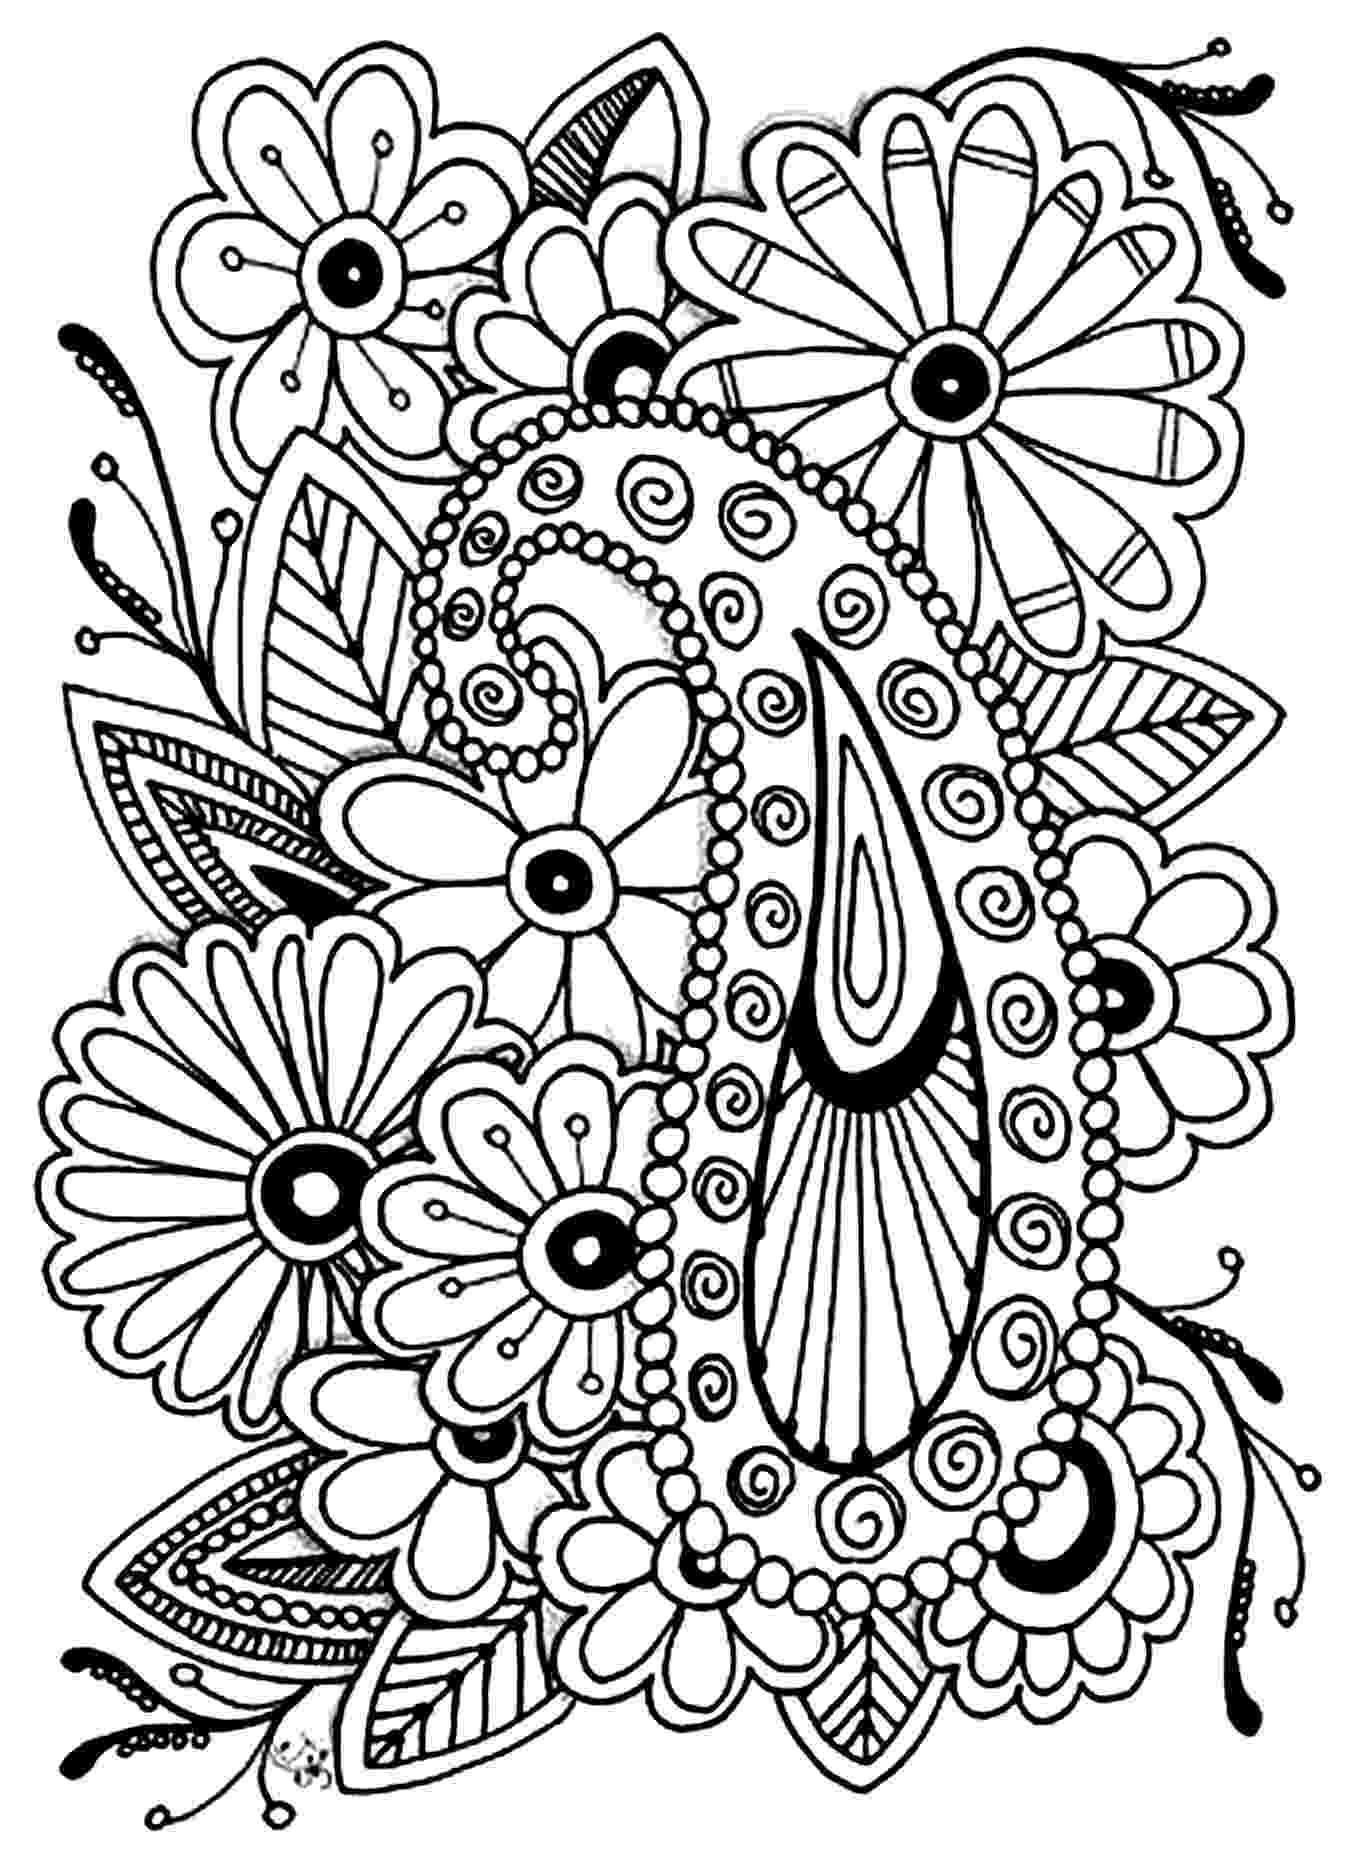 patterns to colour for adults dover coloring pages for grownups geometric coloring colour adults to patterns for